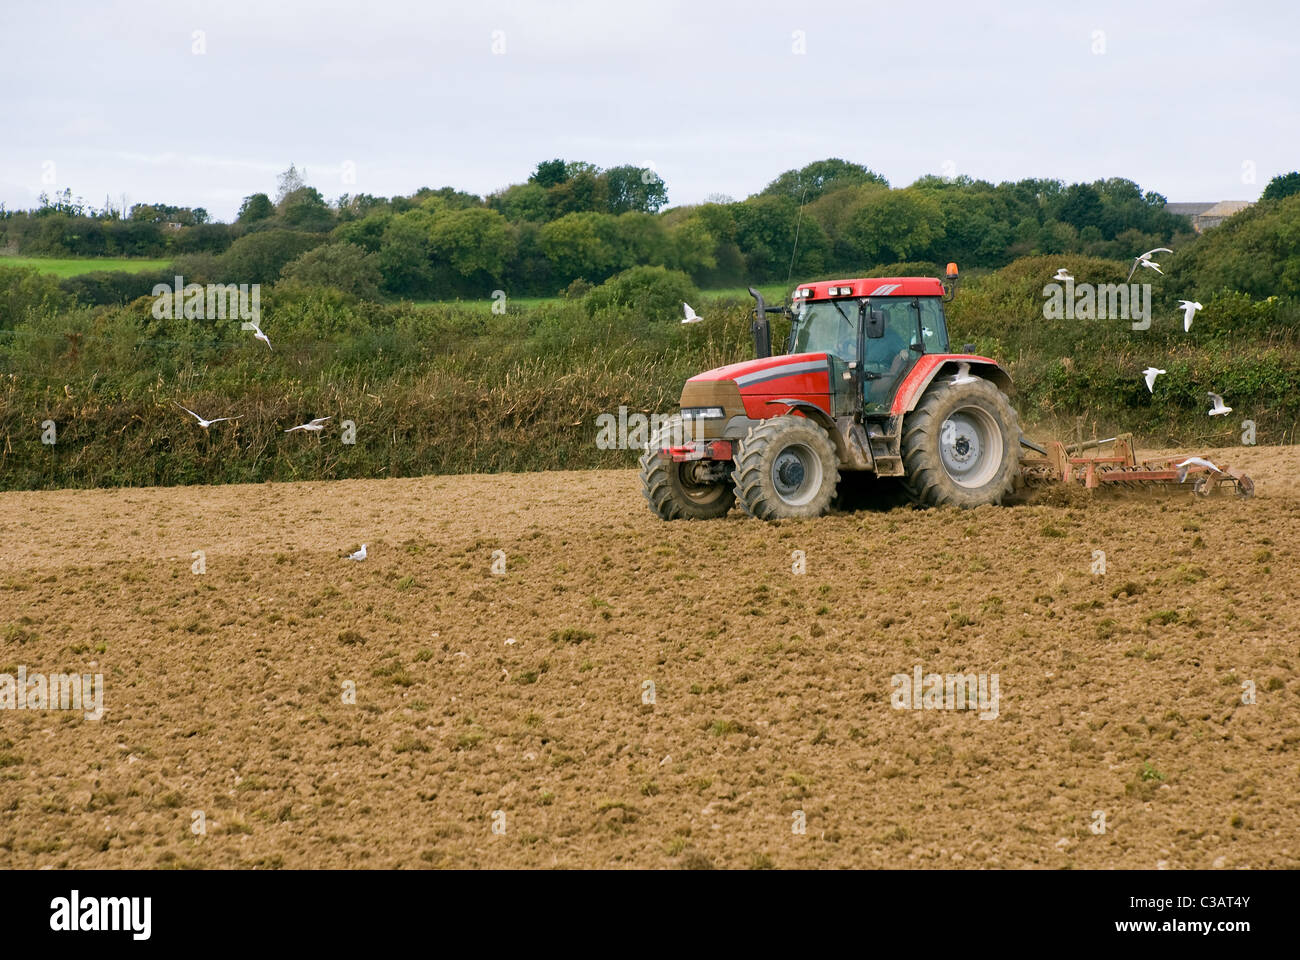 Red tractor in the field. Cornwall, England. - Stock Image